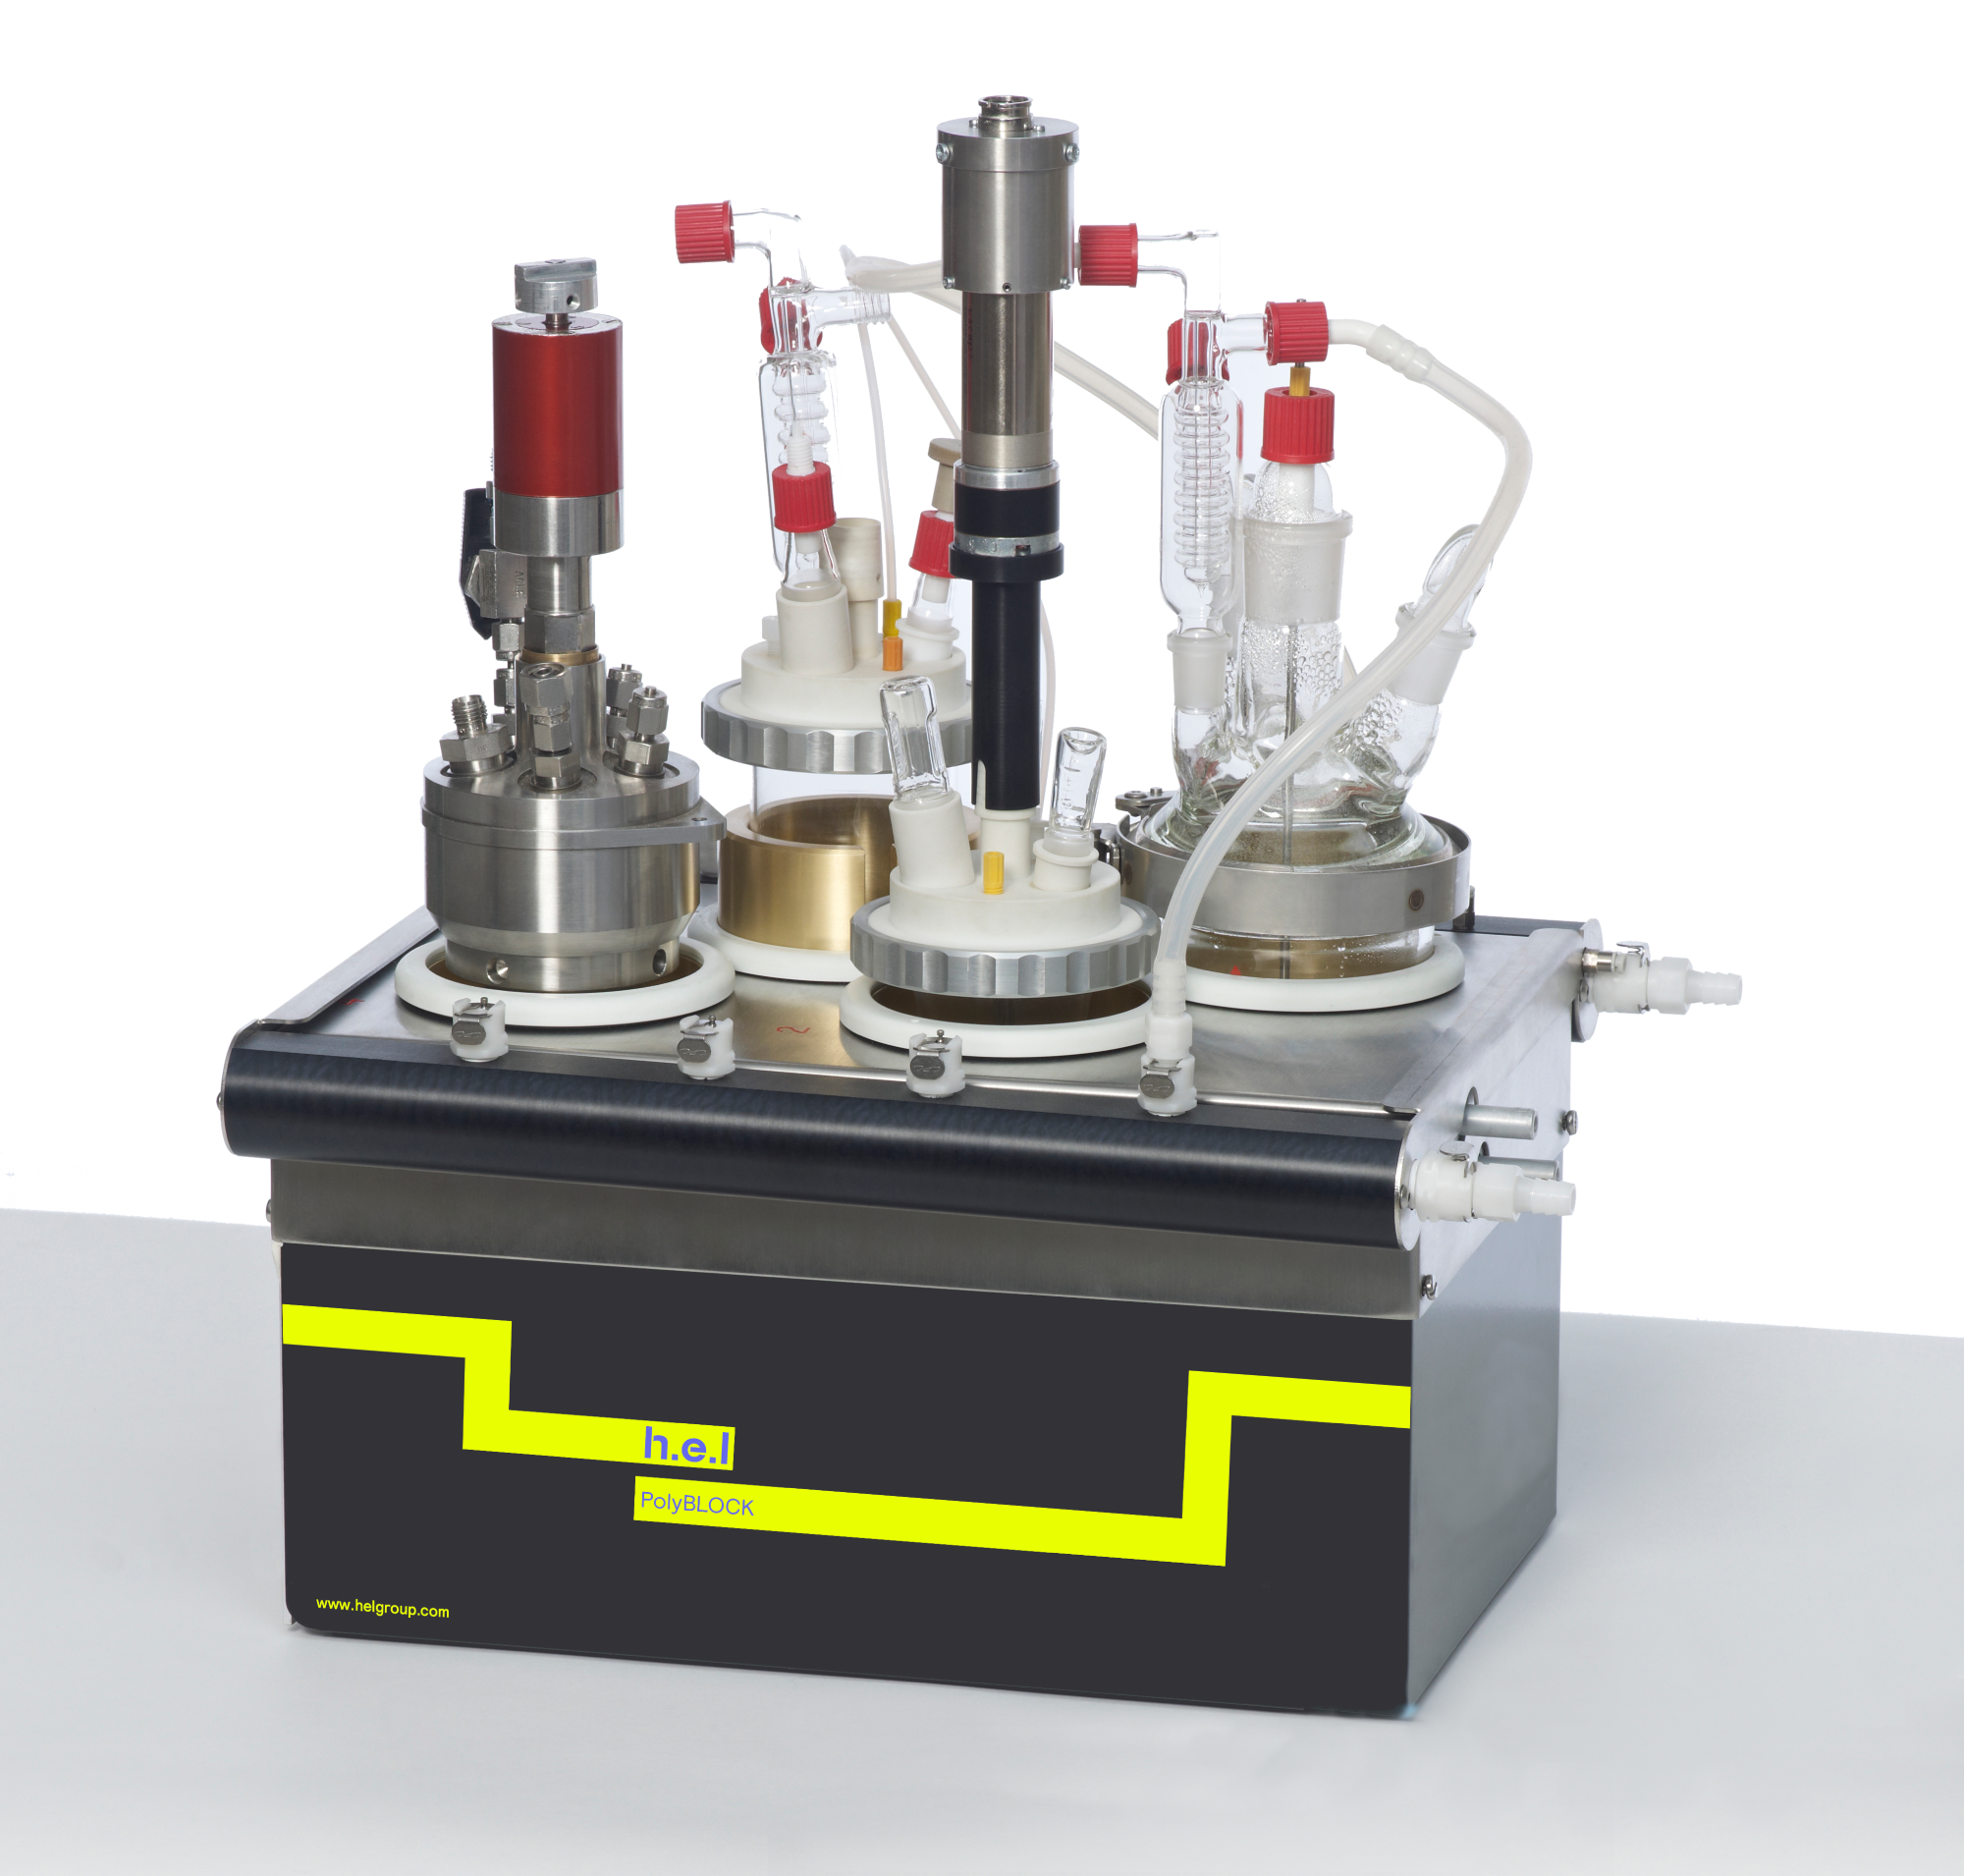 PolyBLOCK 4: A Bench-Top, Compact 4 Reactor Automated Parallel Synthesis Platform